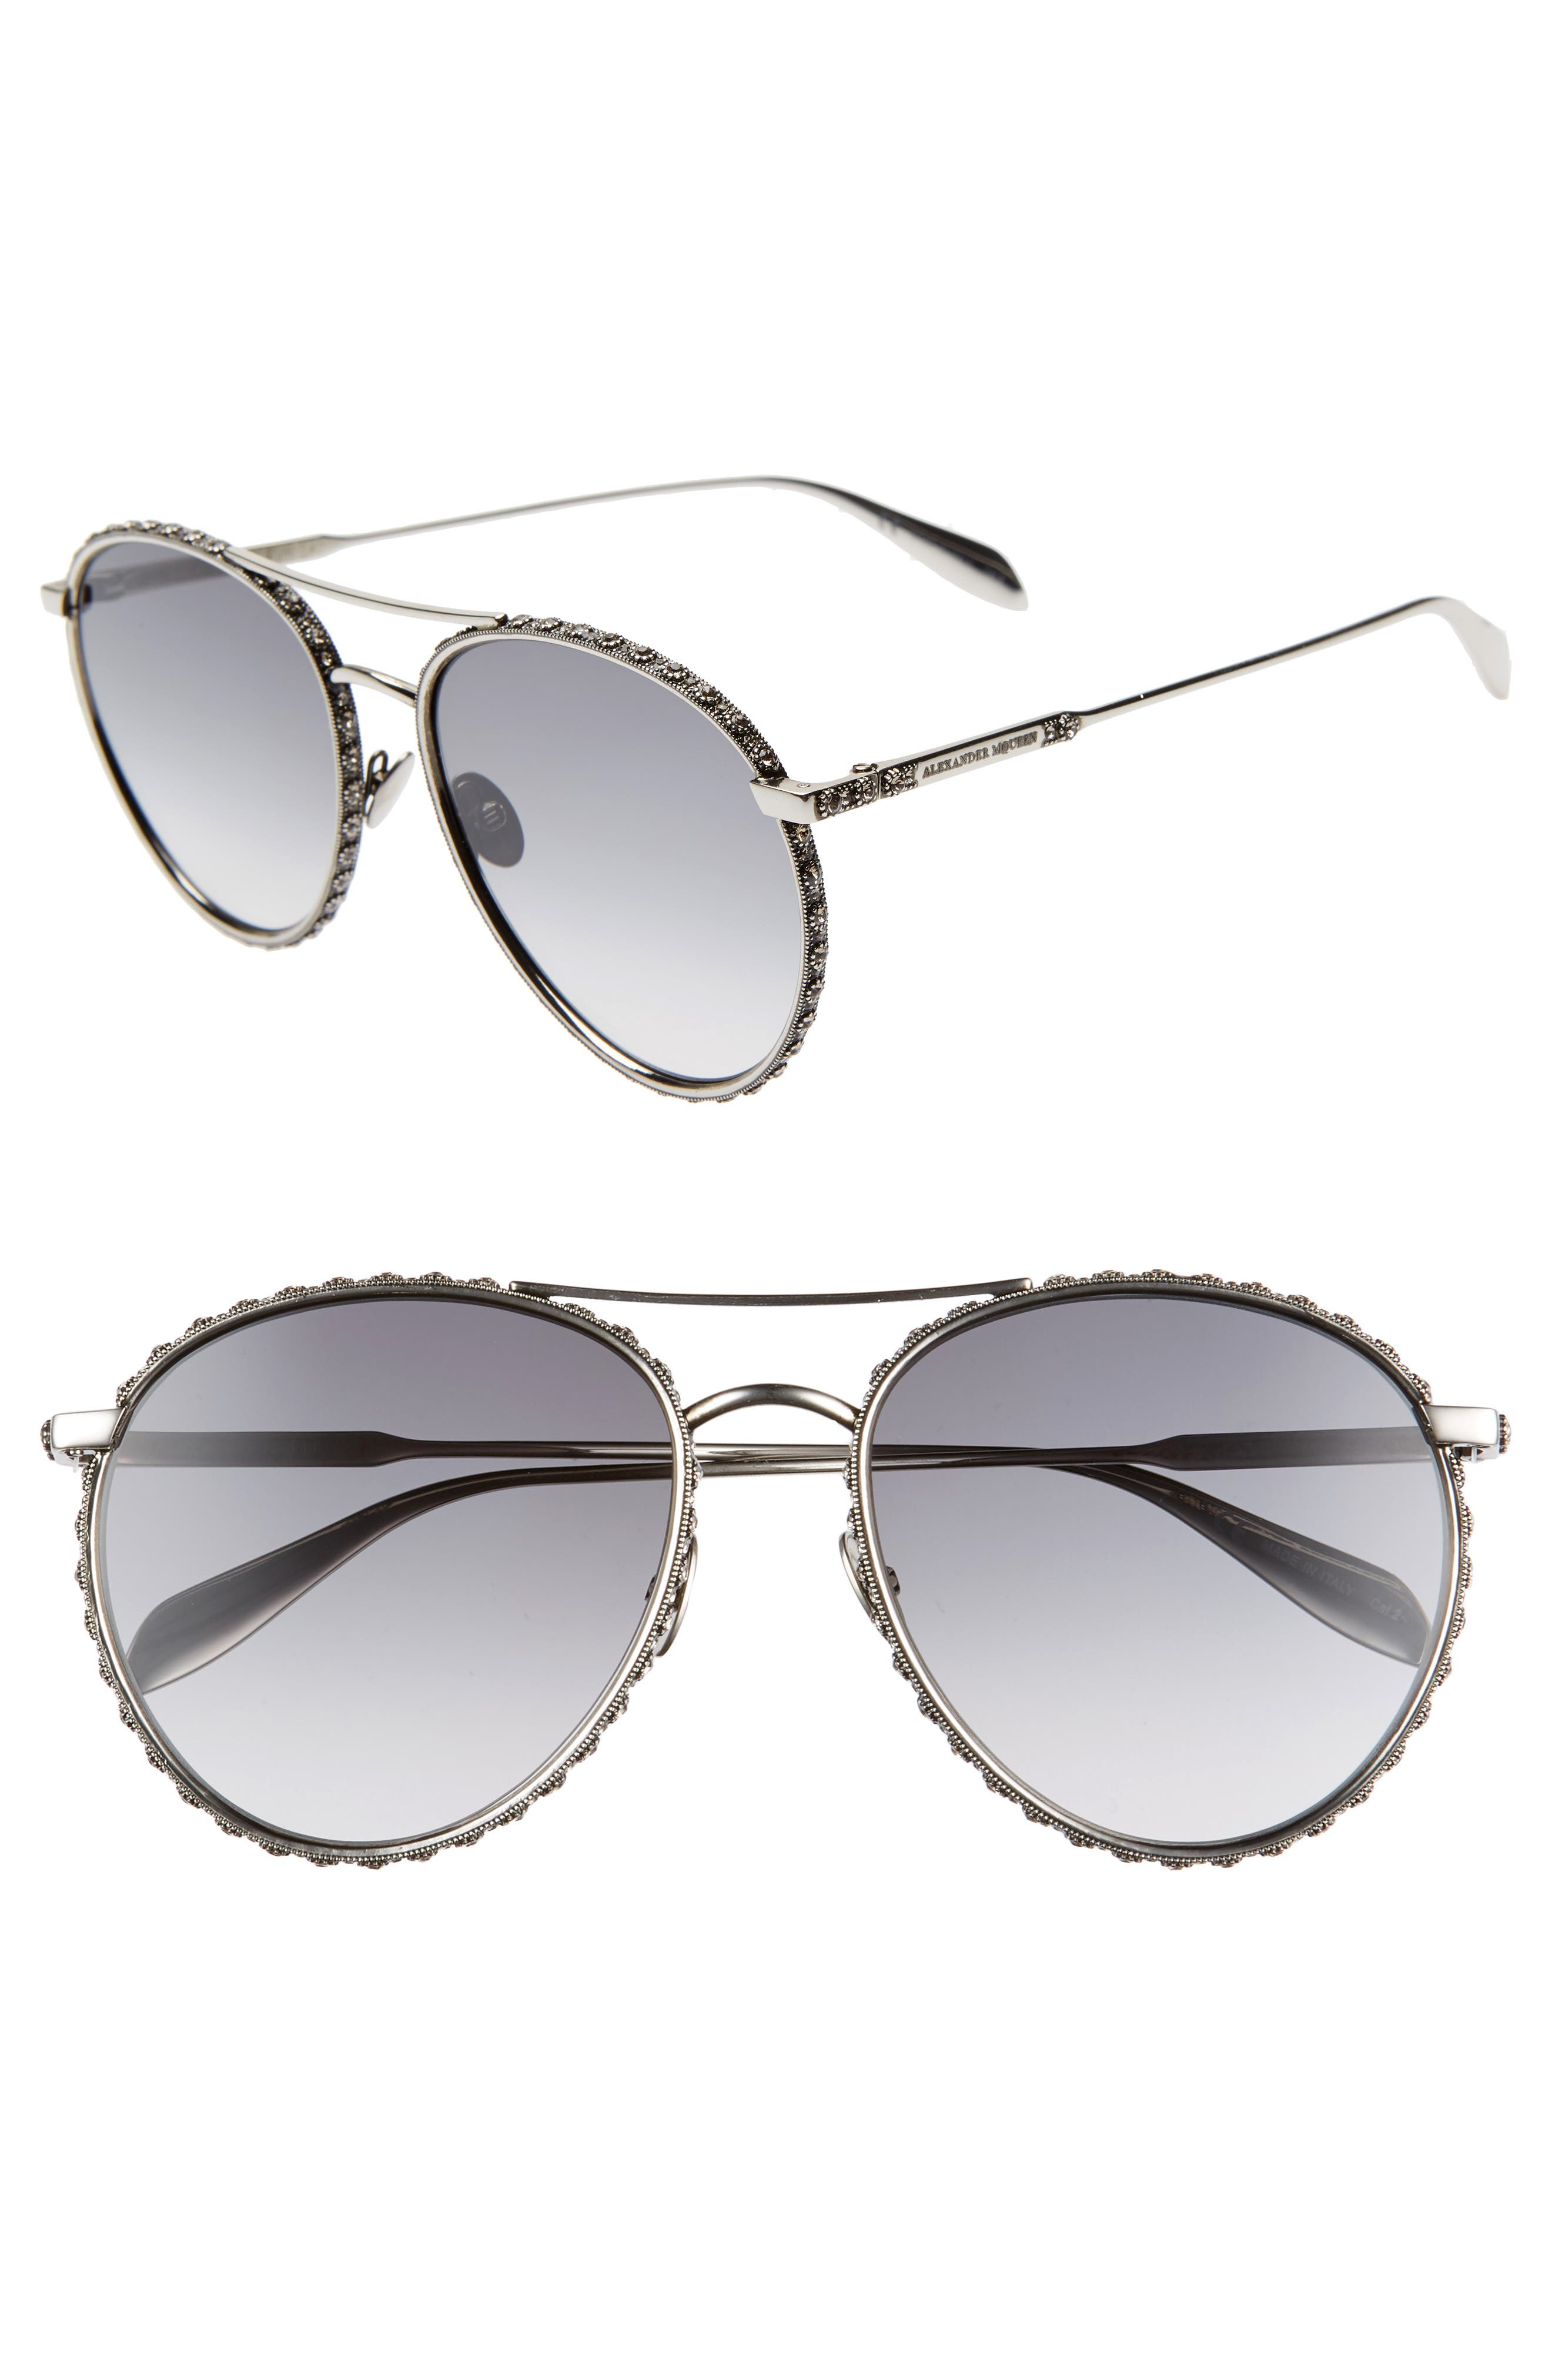 58mm Swarovski Crystal Trim Round Aviator Sunglasses,                             Main thumbnail 1, color,                             SILVER